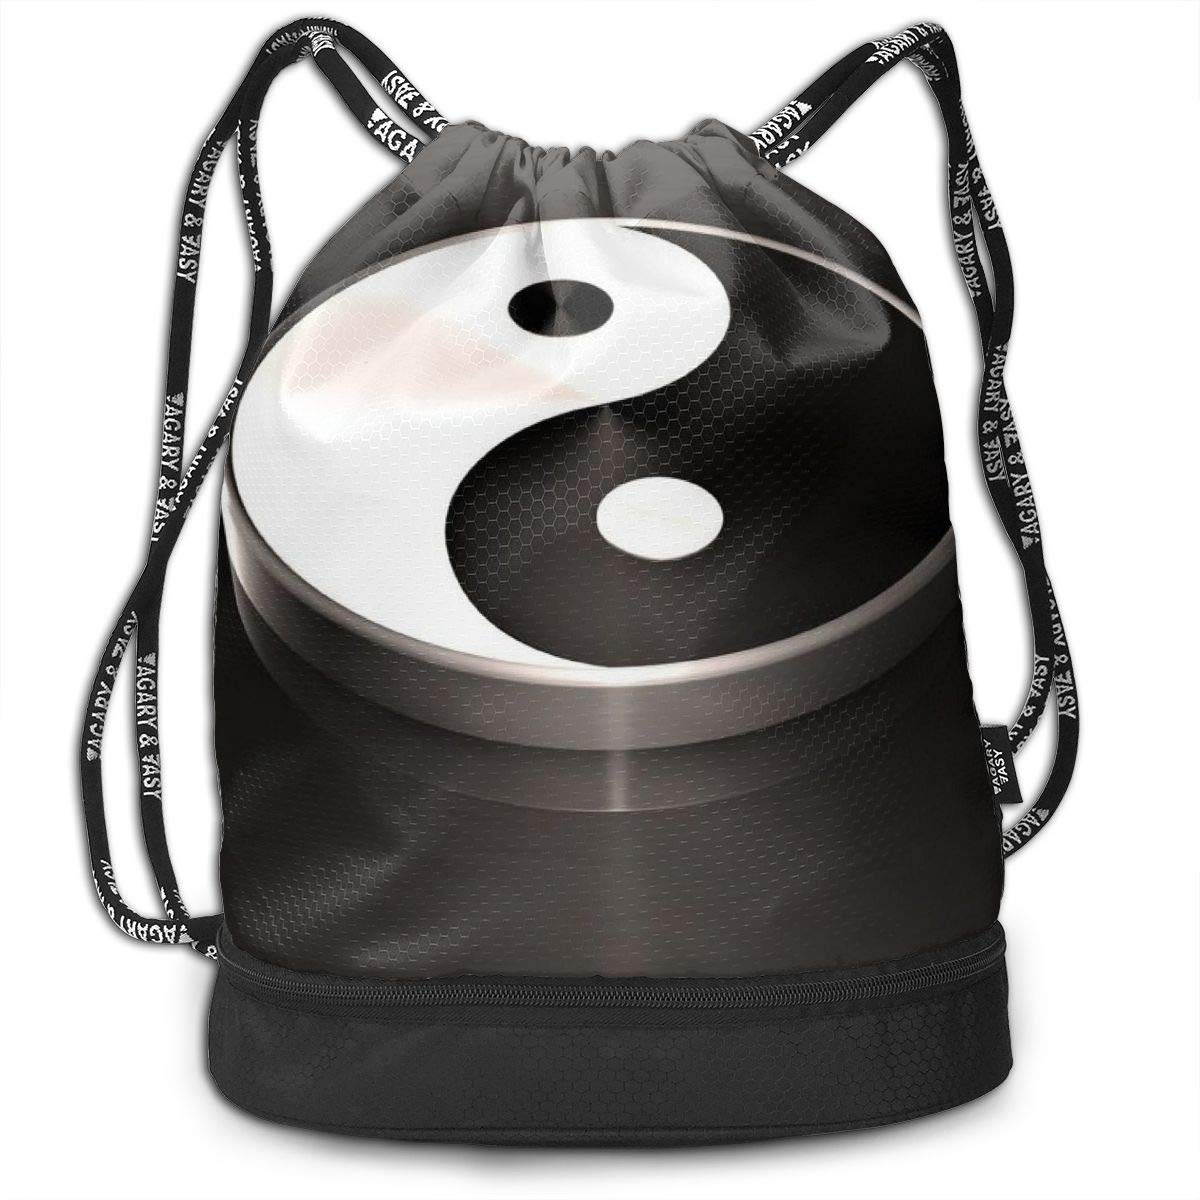 Yin Yang Printed Sackpack Kji Gym Sack Drawstring Bag Women Sport Cinch Pack Backpack for Men